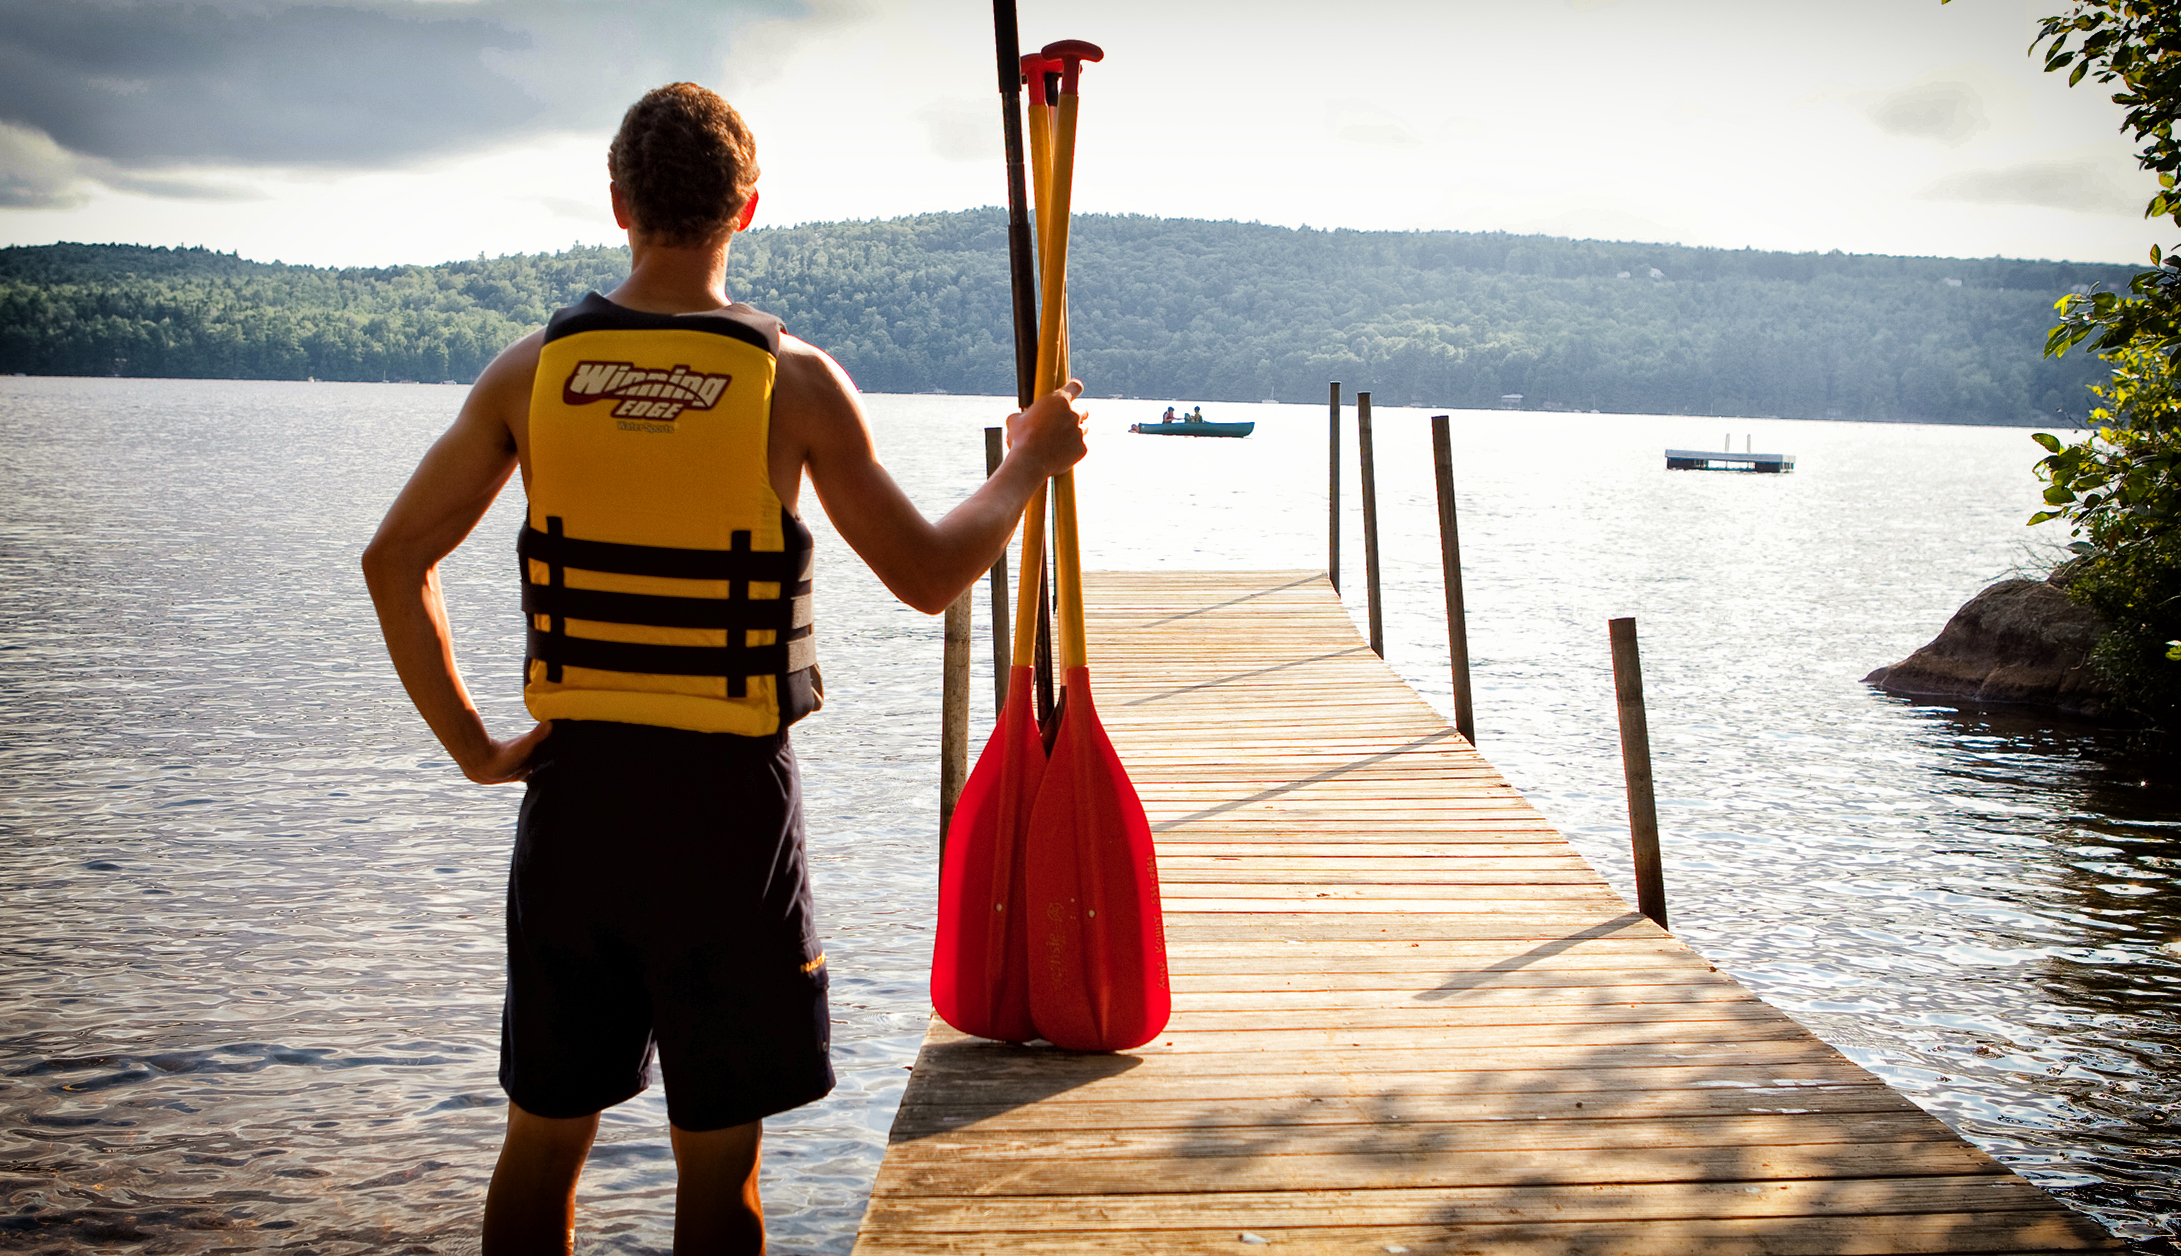 Bunac summer camp kayak instructor working abroad and getting paid in the USA